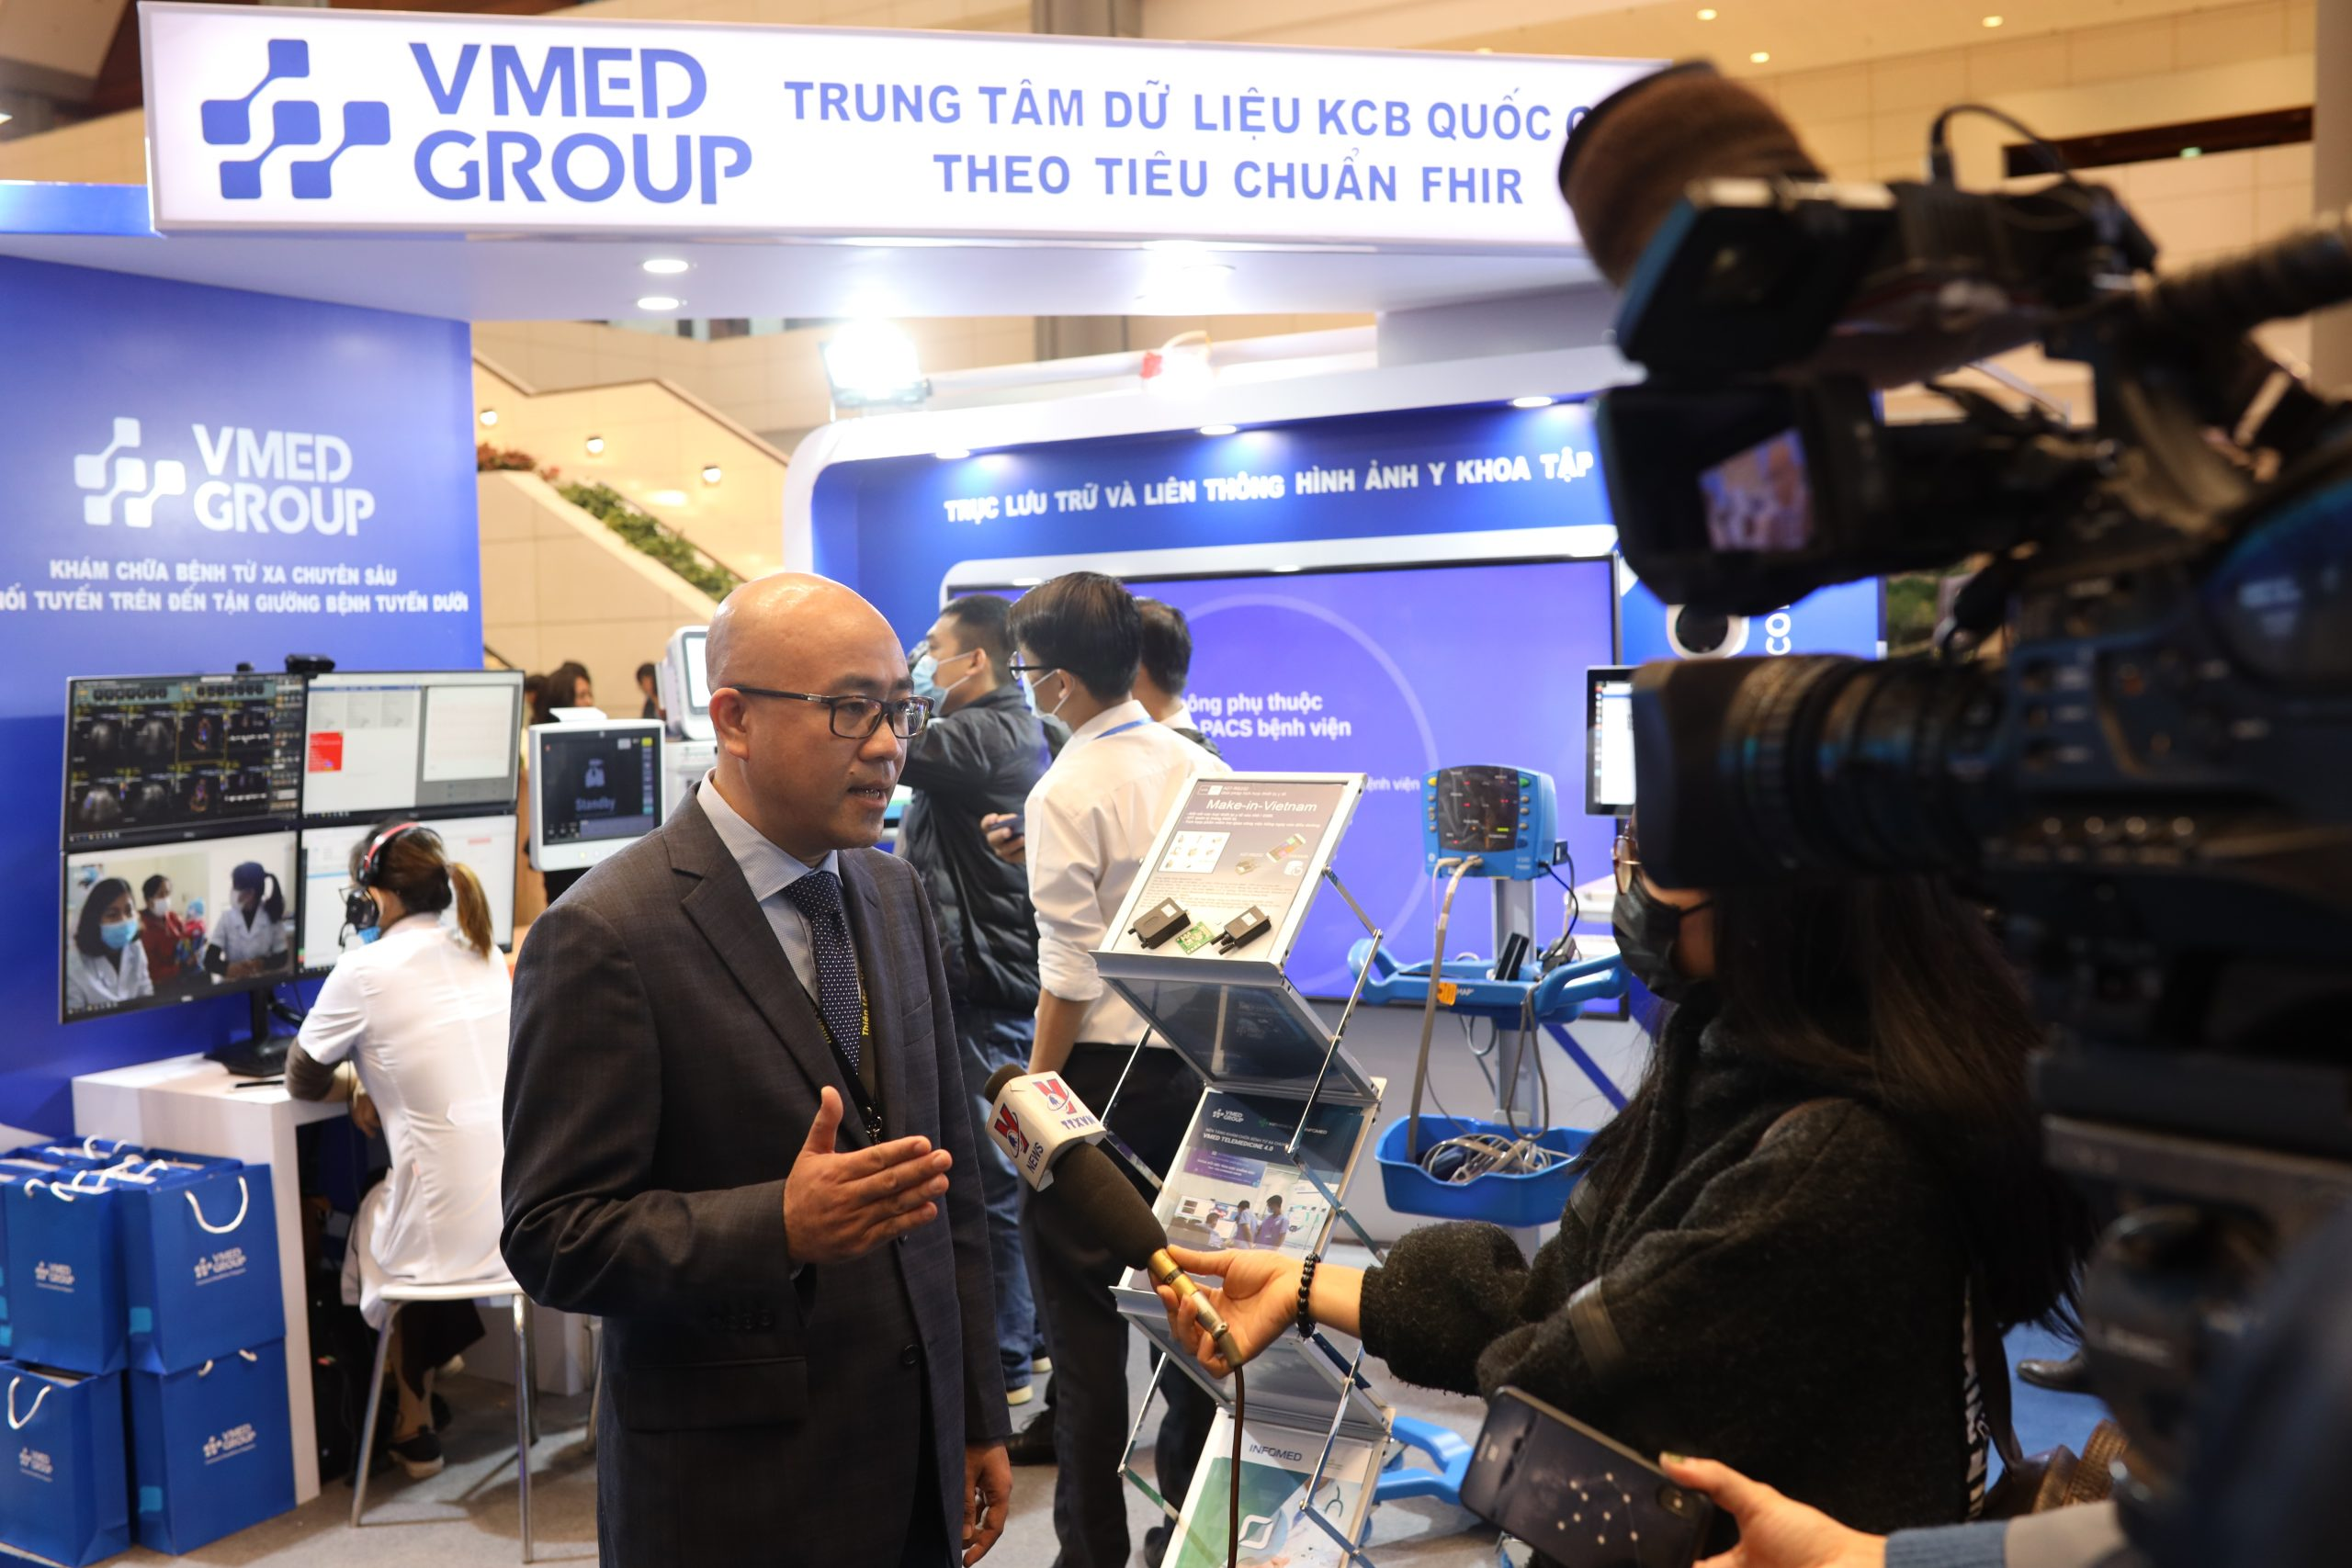 """VMED Group brings """"intensive solutions"""" to the National Health Digital Transformation Conference 2020"""